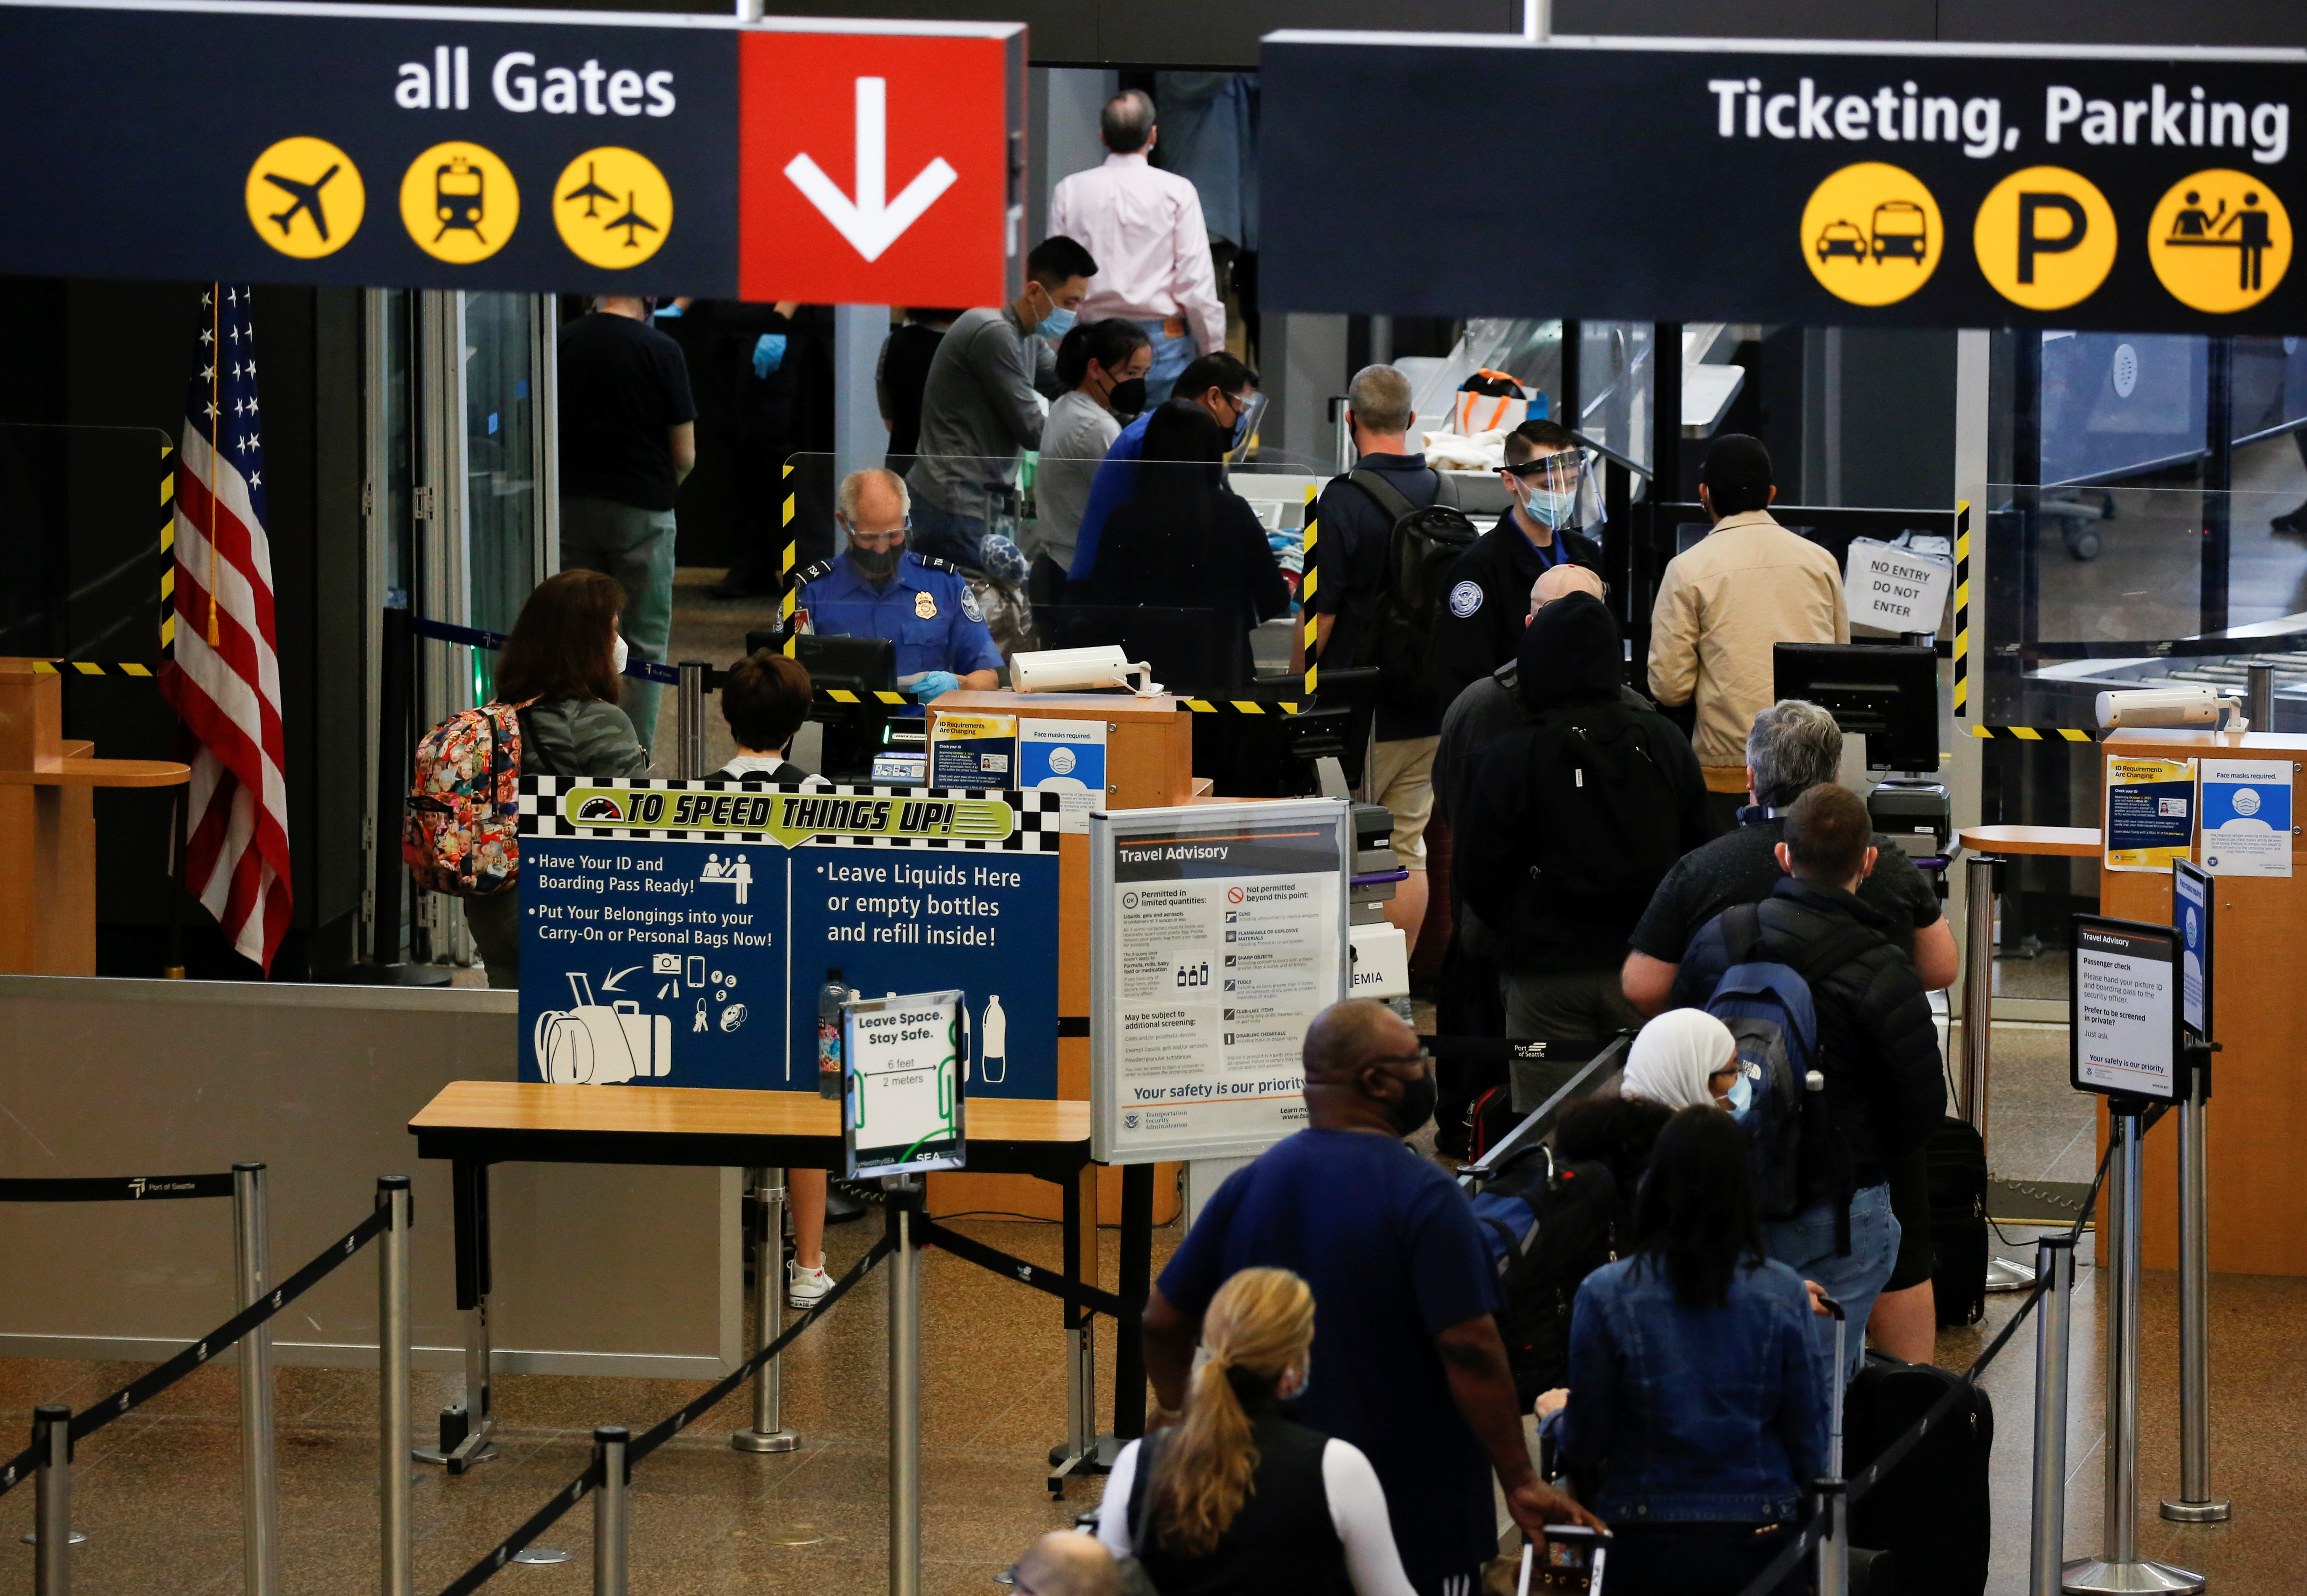 Travelers queue in a security line limited to every other lane for social distancing at Seattle-Tacoma International Airport in SeaTac, Washington, U.S. April 12, 2021.  REUTERS/Lindsey Wasson